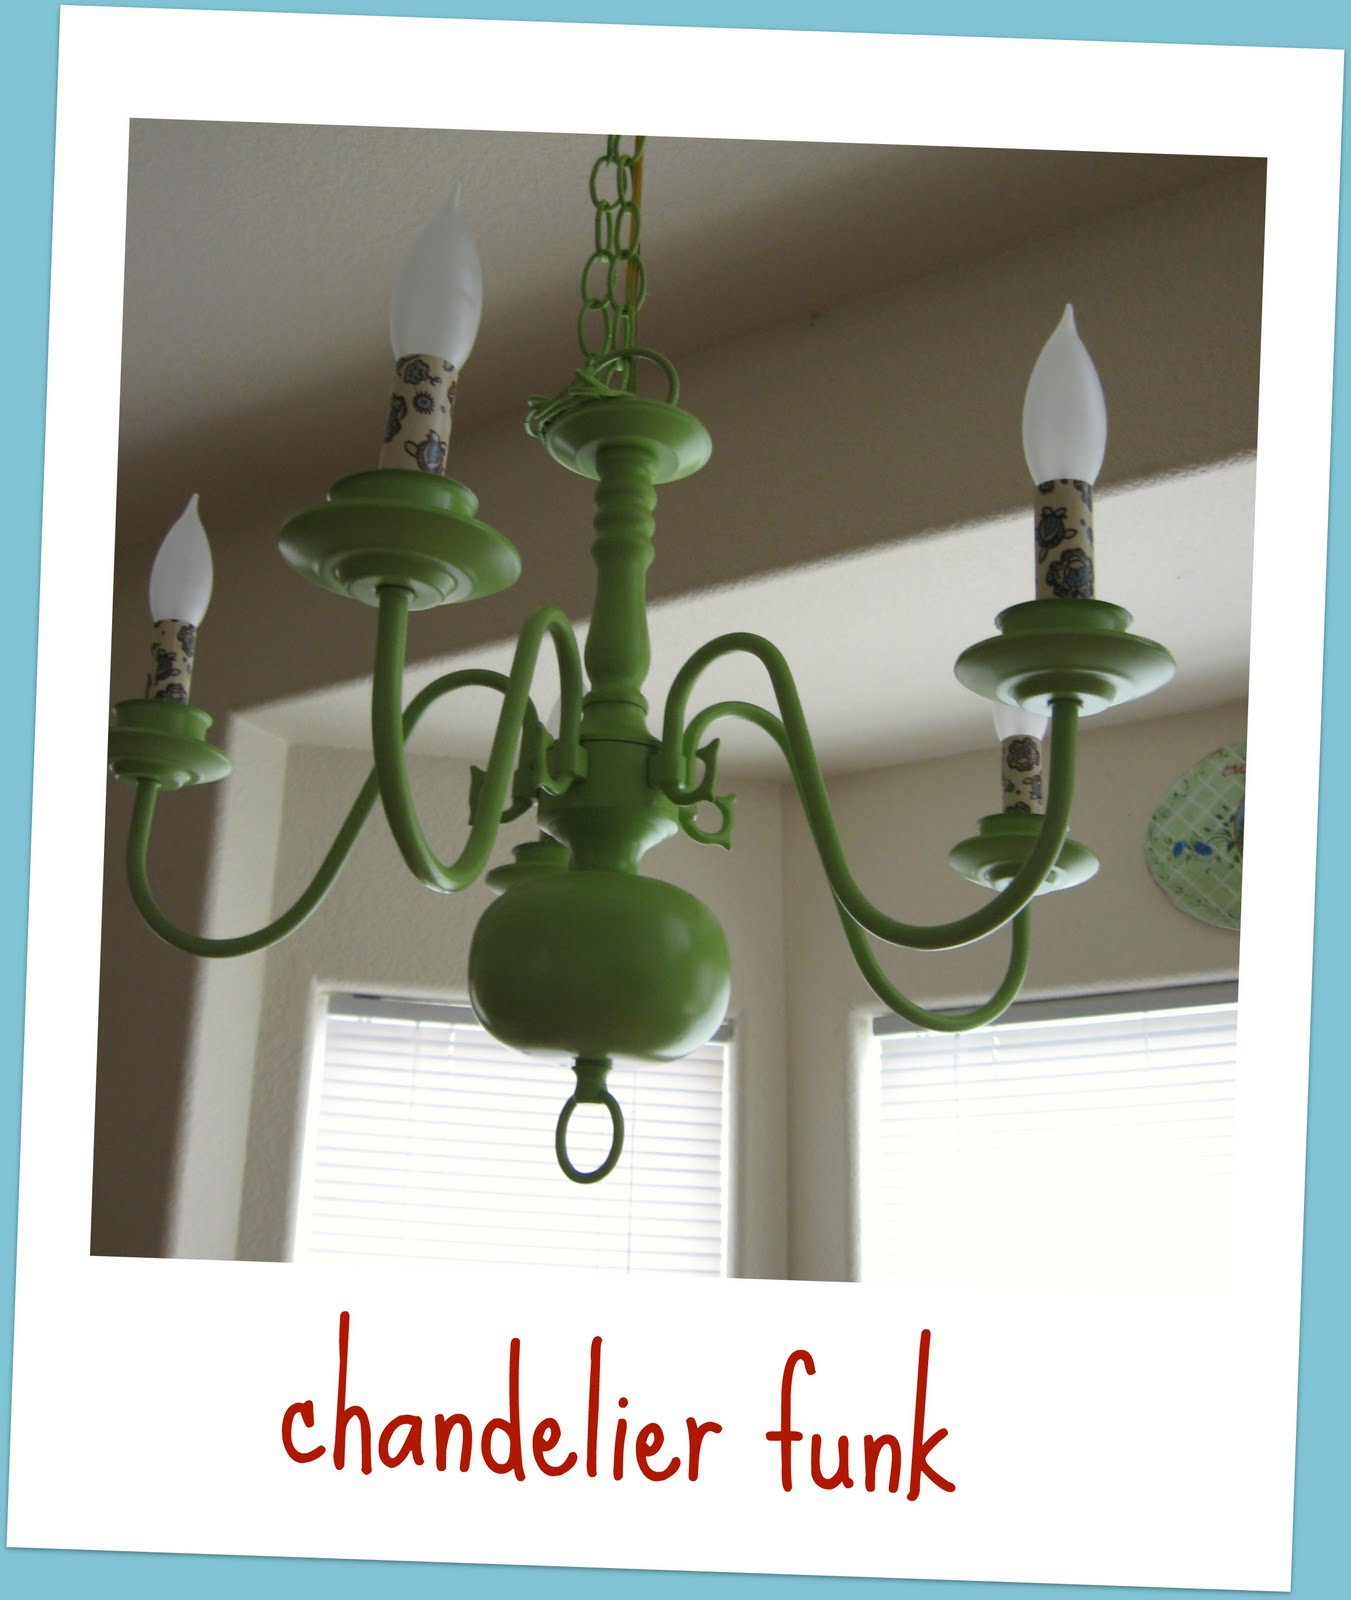 Chandelier Socket Covers at Crystal Chandelier – Chandelier Candle Sleeves